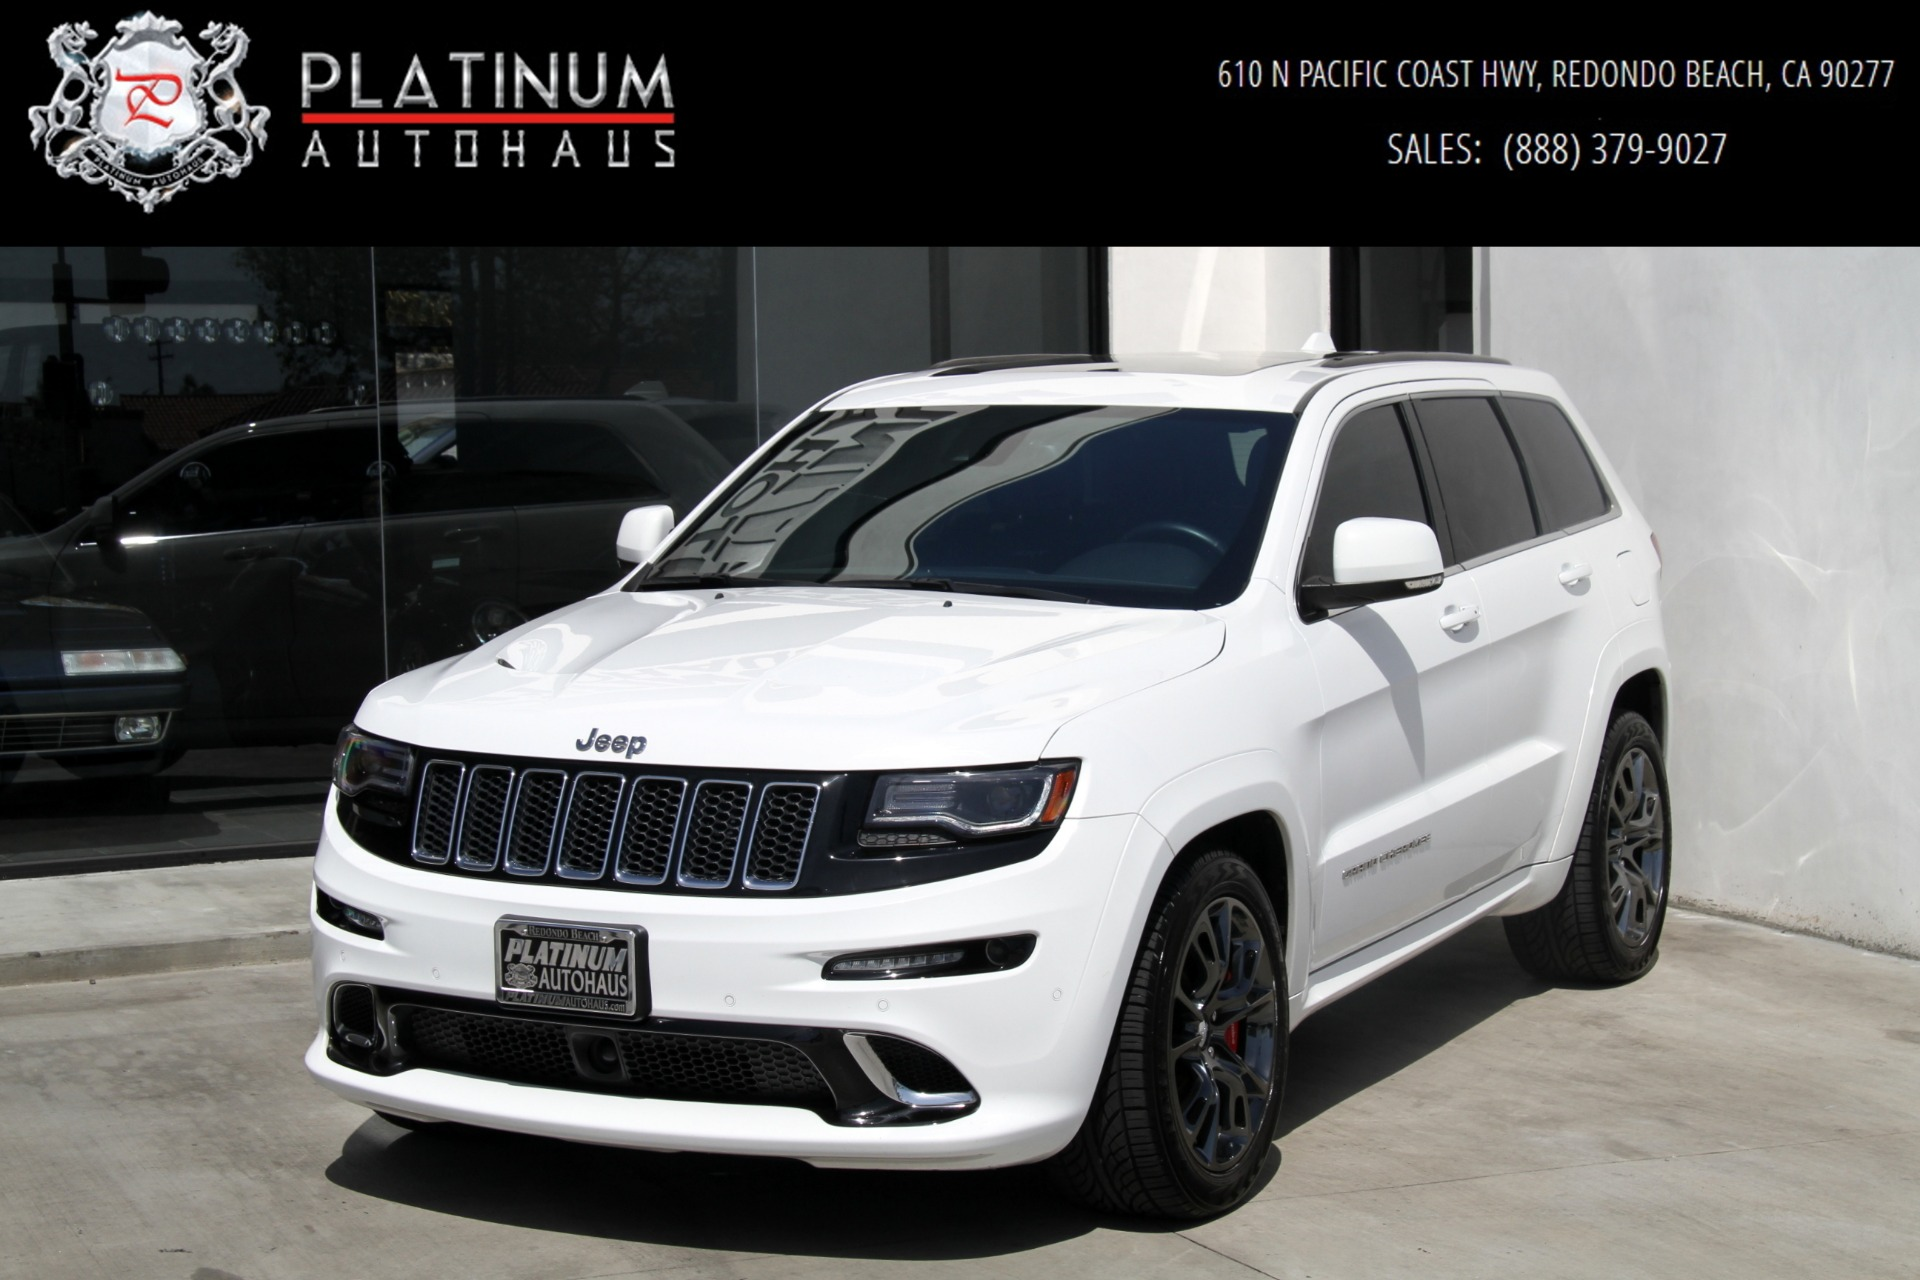 Jeep Srt8 For Sale Near Me >> 2014 Jeep Grand Cherokee Srt Stock 6147a For Sale Near